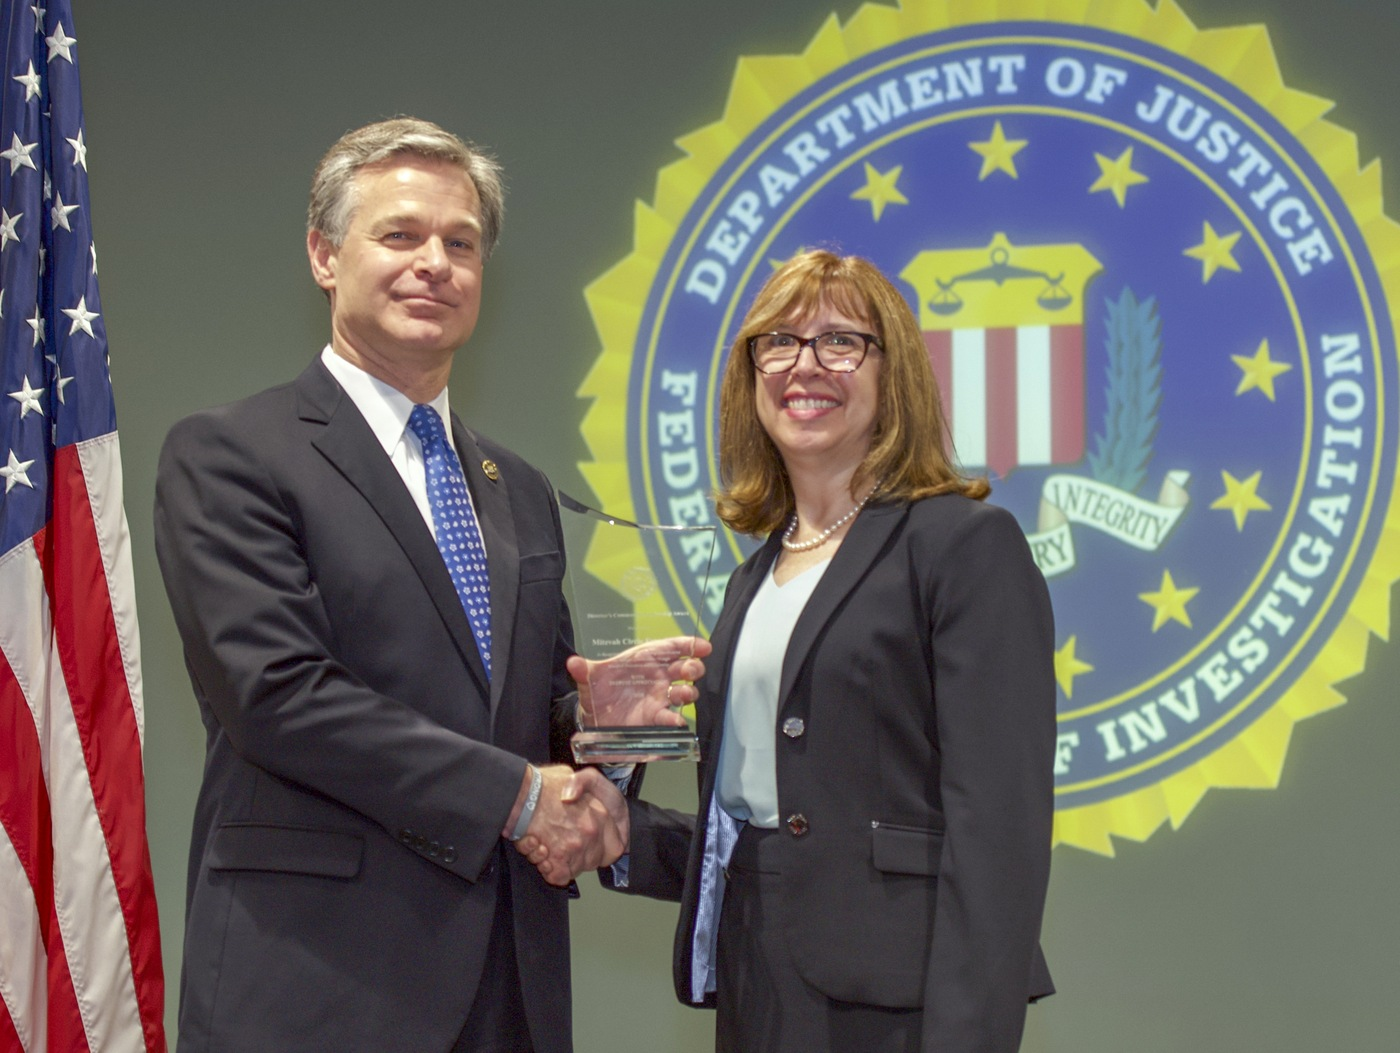 FBI Director Christopher Wray presents Philadelphia Division recipient the Mitzvah Circle Foundation (represented by Fran Held) with the Director's Community Leadership Award (DCLA) at a ceremony at FBI Headquarters on May 3, 2019.